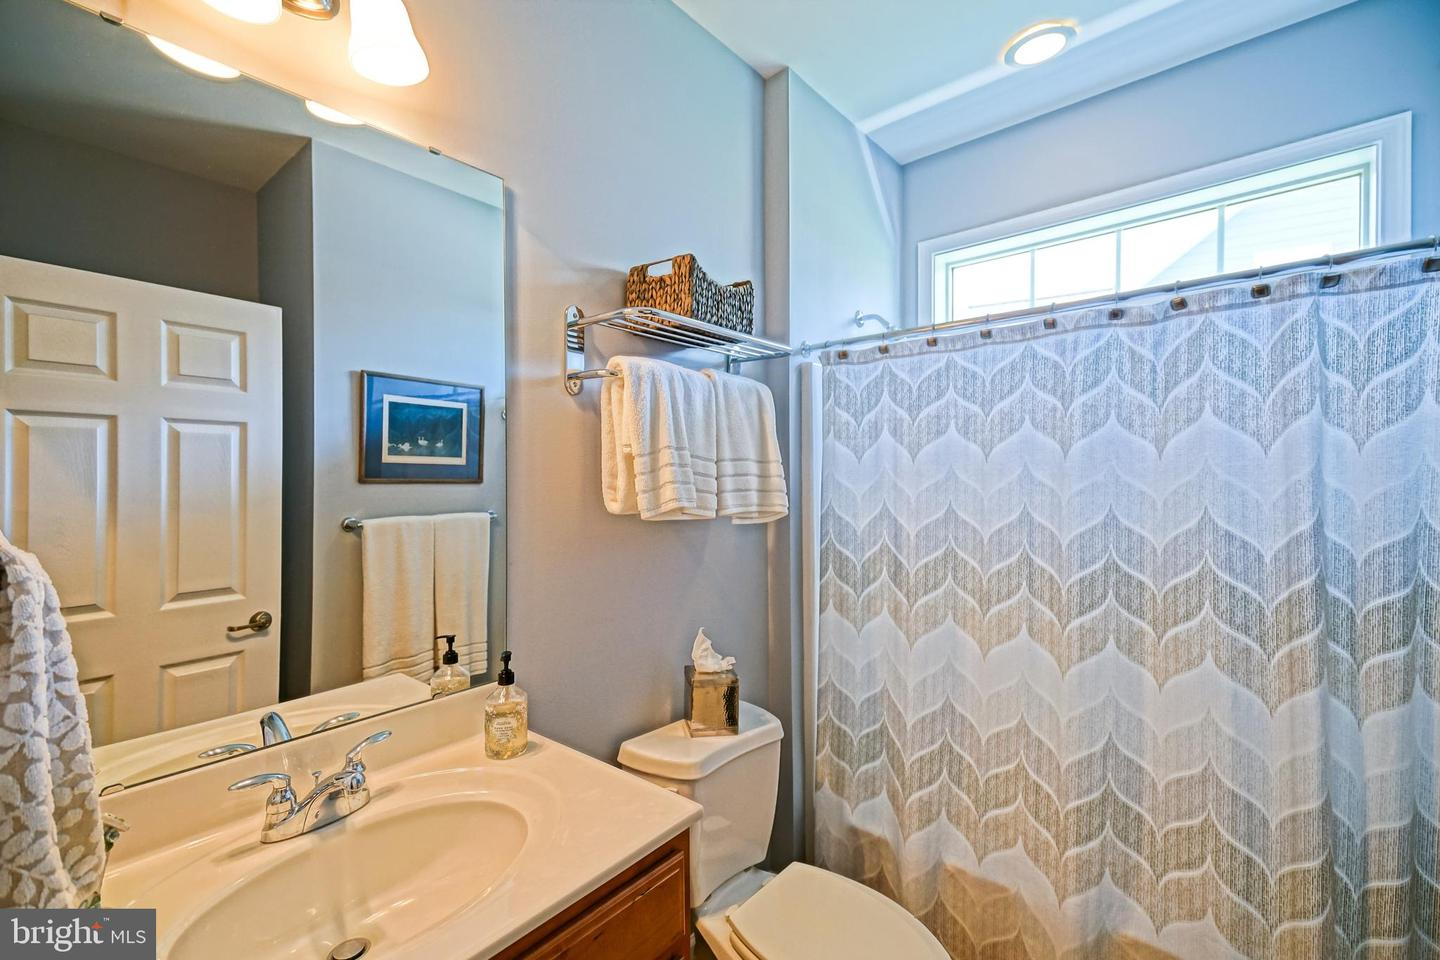 DESU139128-301667382723-2019-08-05-10-43-56 35222 Overfalls Dr N | Lewes, DE Real Estate For Sale | MLS# Desu139128  - Lee Ann Group